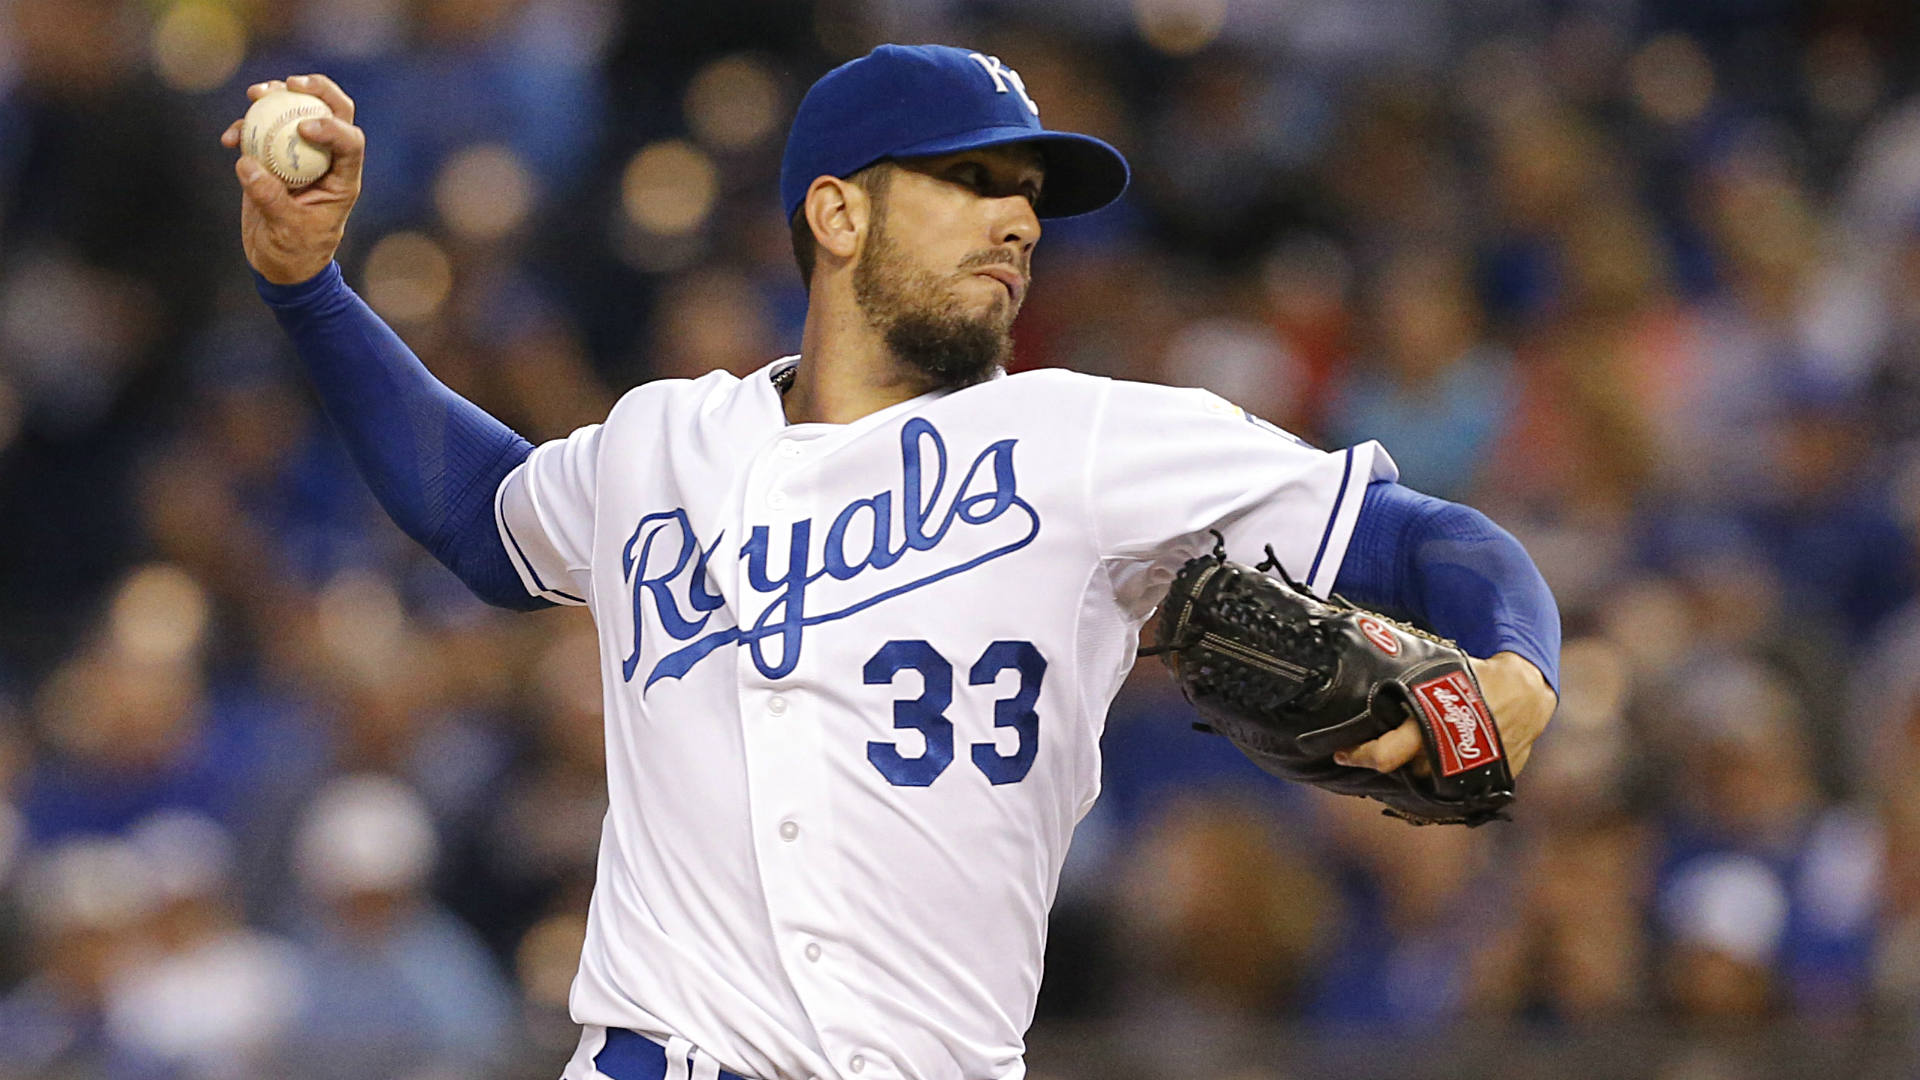 Fantasy Baseball Rankings: Saturday's starting pitchers